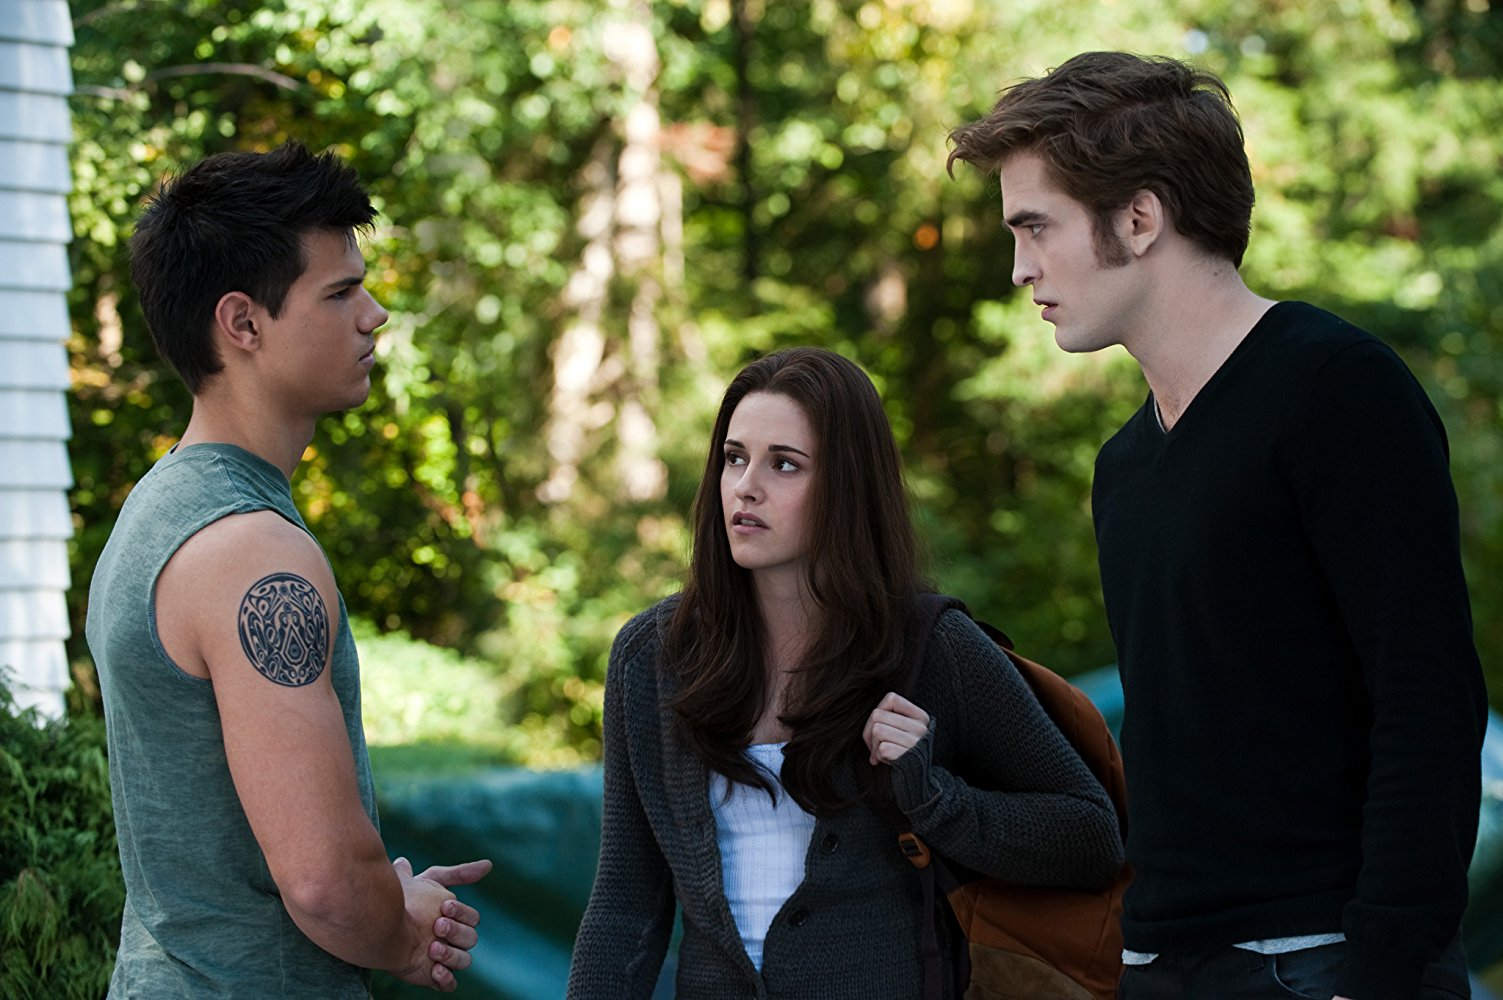 Love triangle - Bella Swan (Kirsten Stewart), Jacob Black (Taylor Lautner) and Edward Cullen (Robert Pattinson) in Eclipse (2010)